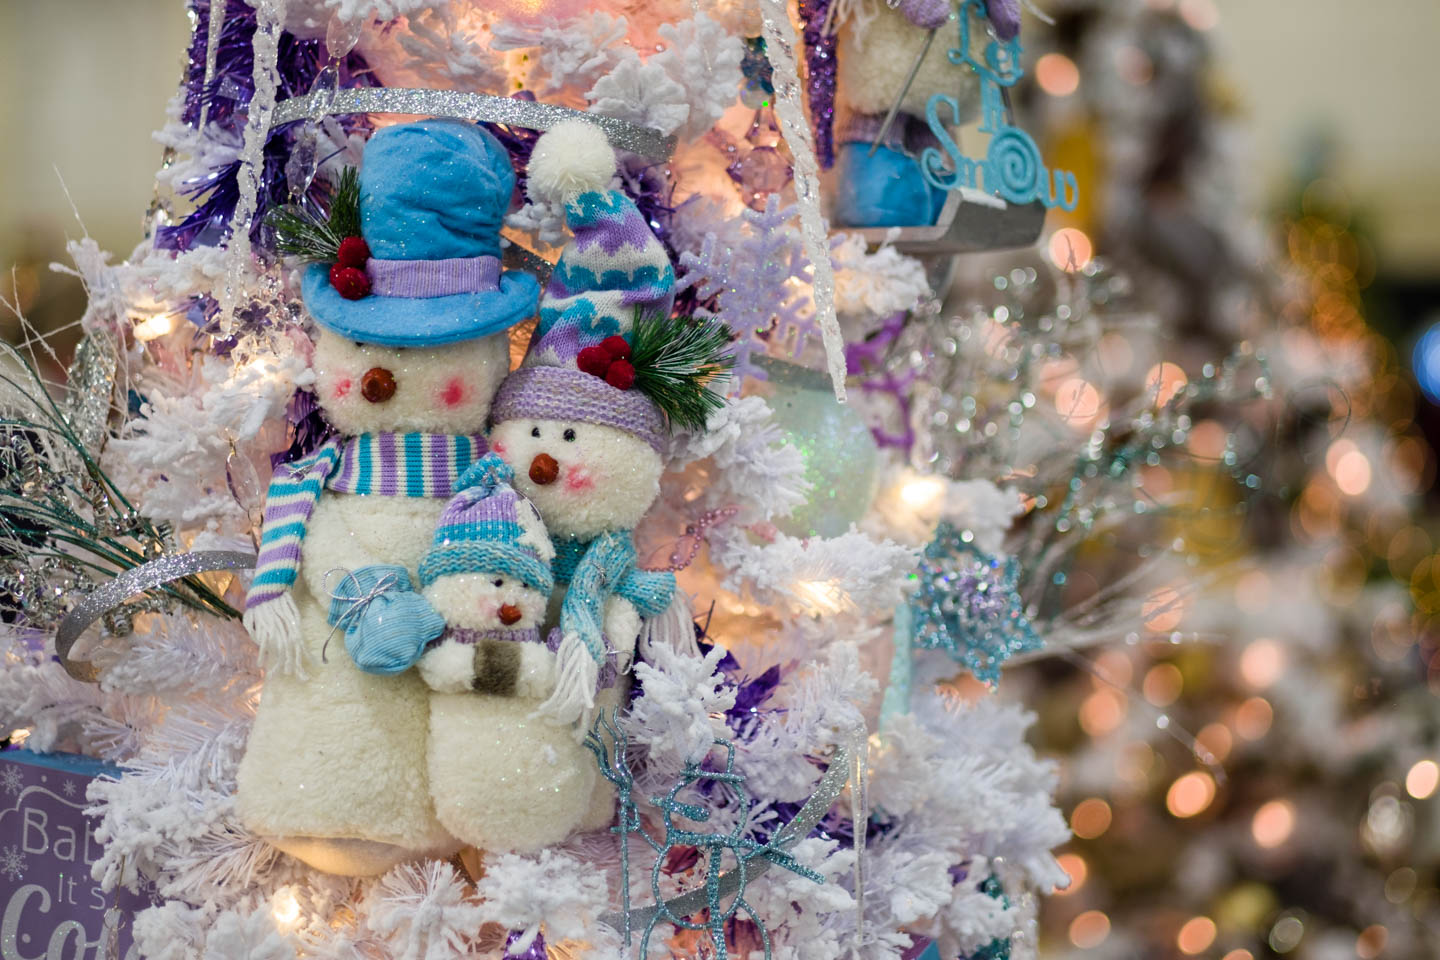 Christmas trees and decorations at the Festival of Trees